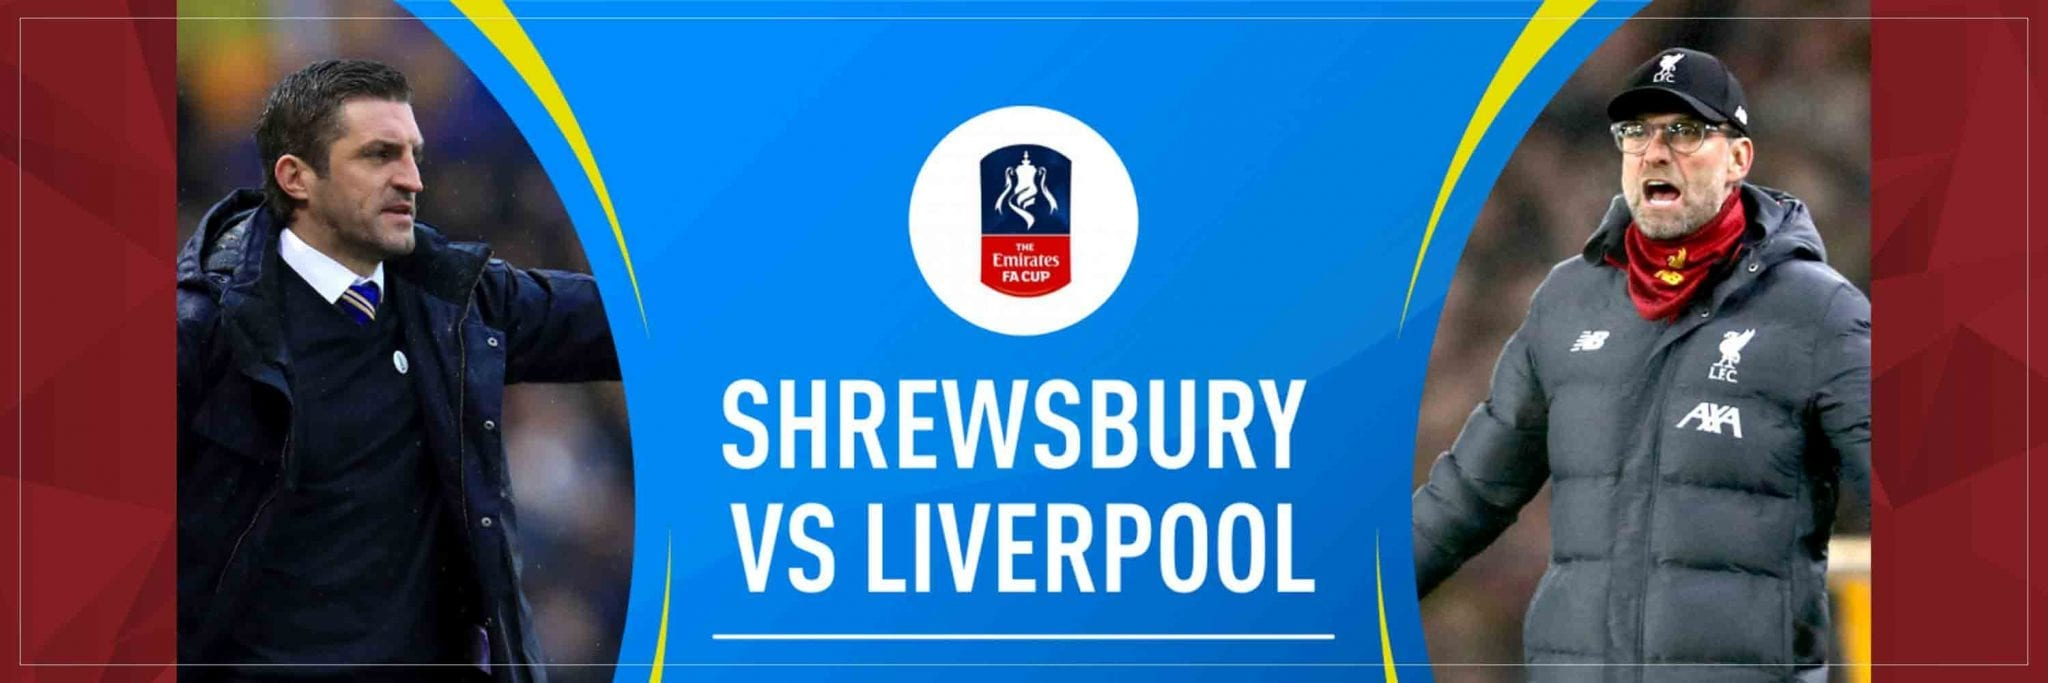 Liverpool-vs-Shrewsbury